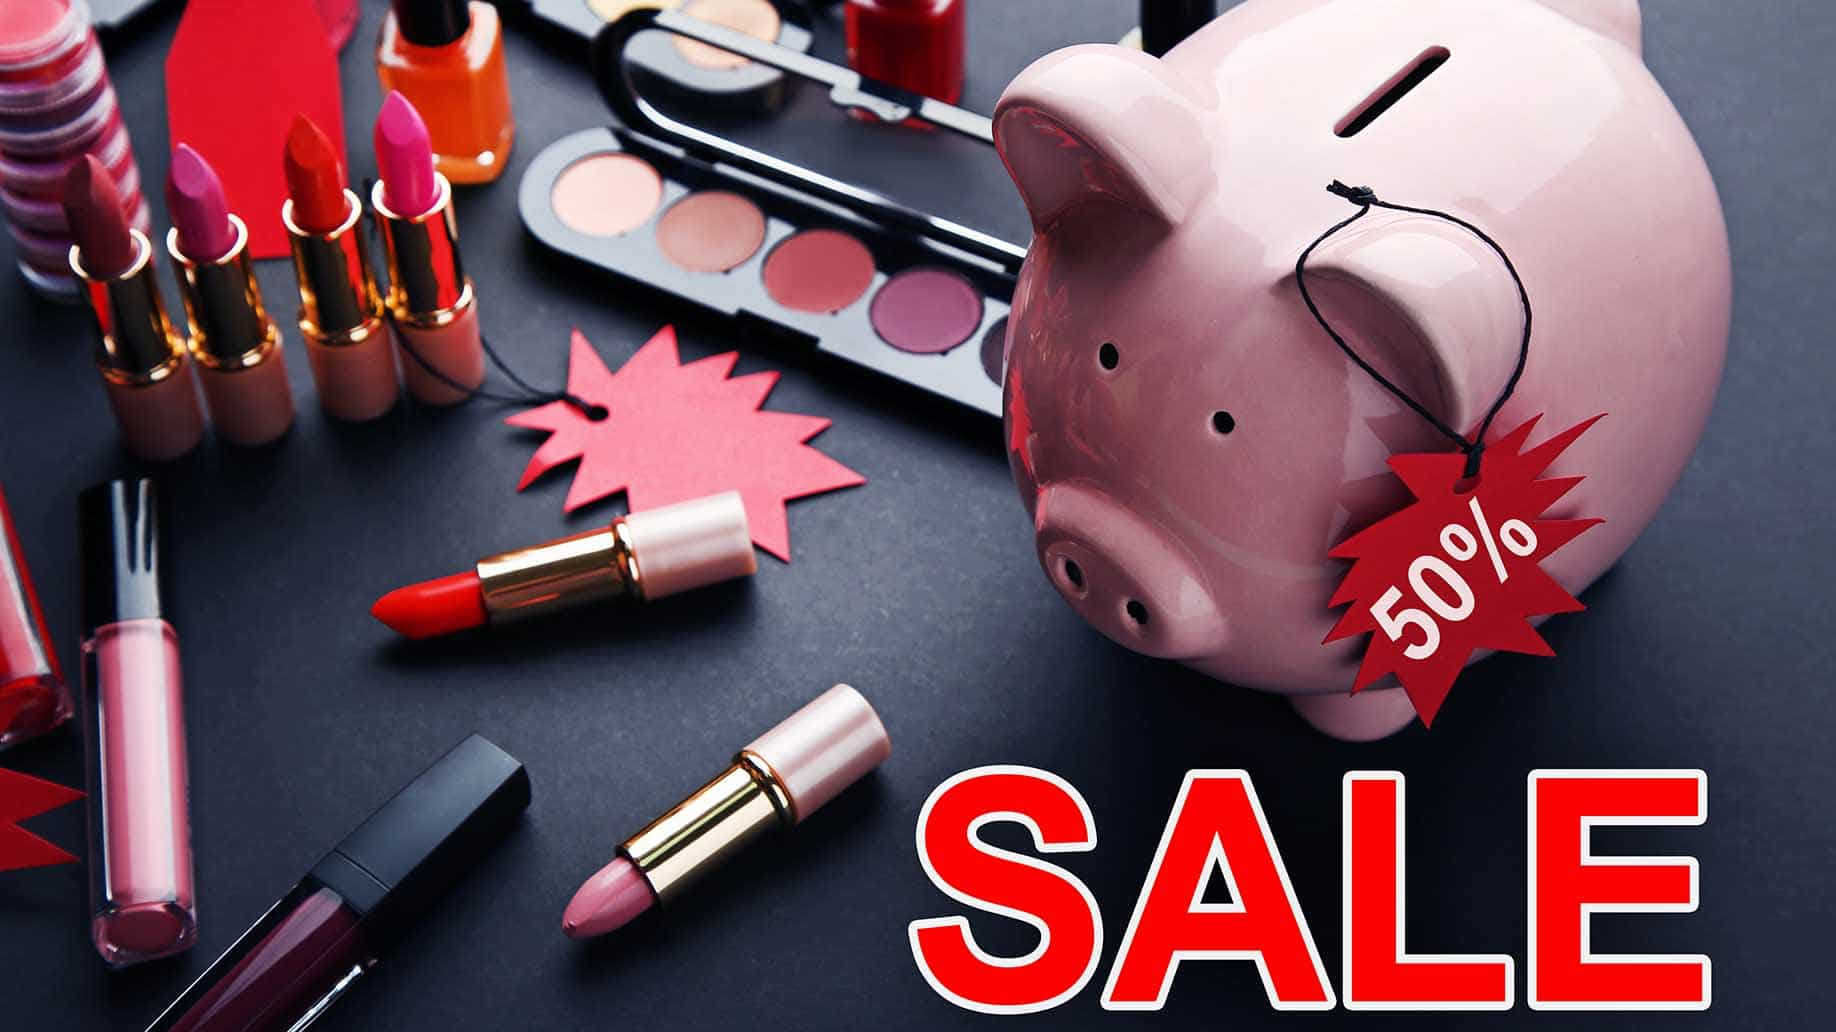 How to save on expensive cosmetics